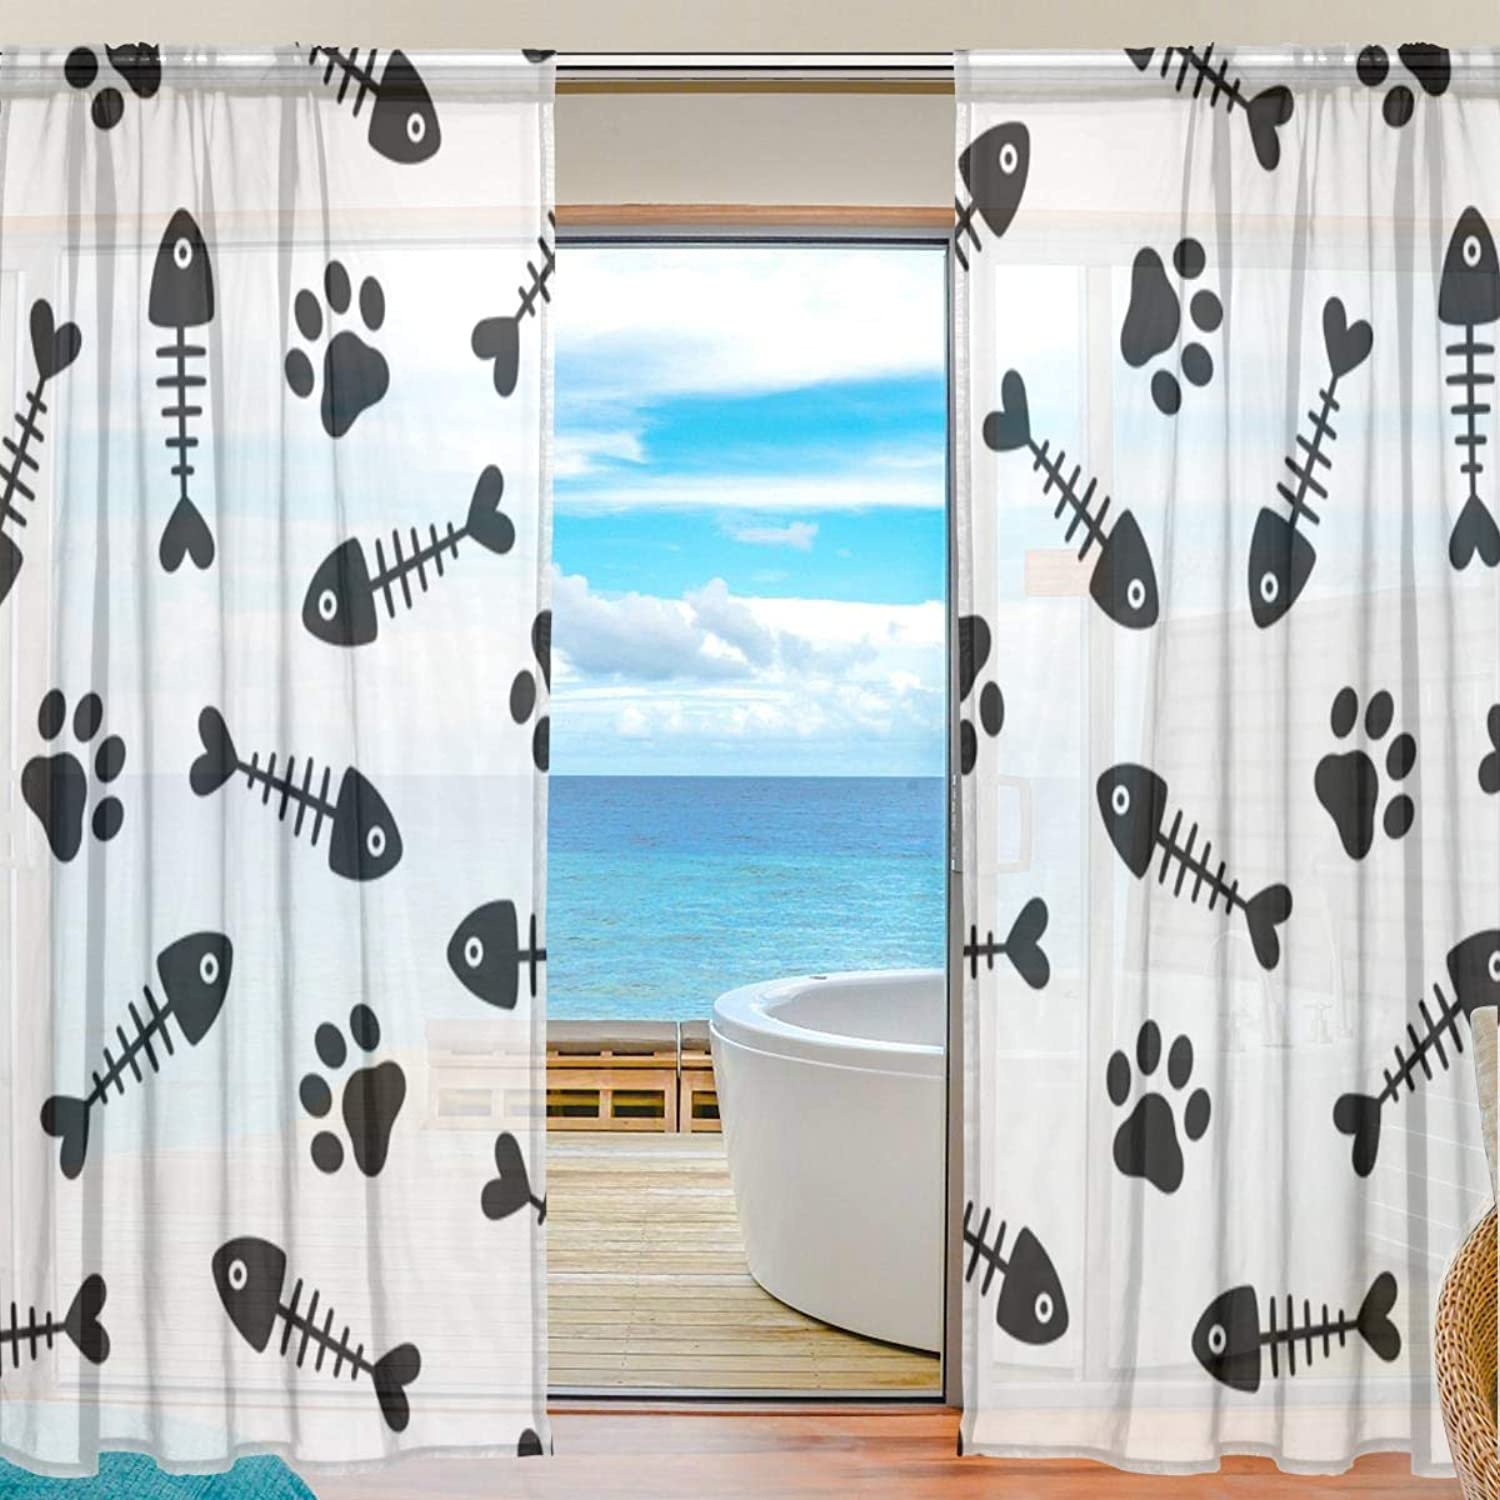 Fish Bones 2 Pieces Curtain Panel 55 x 78 inches for Bedroom Living Room